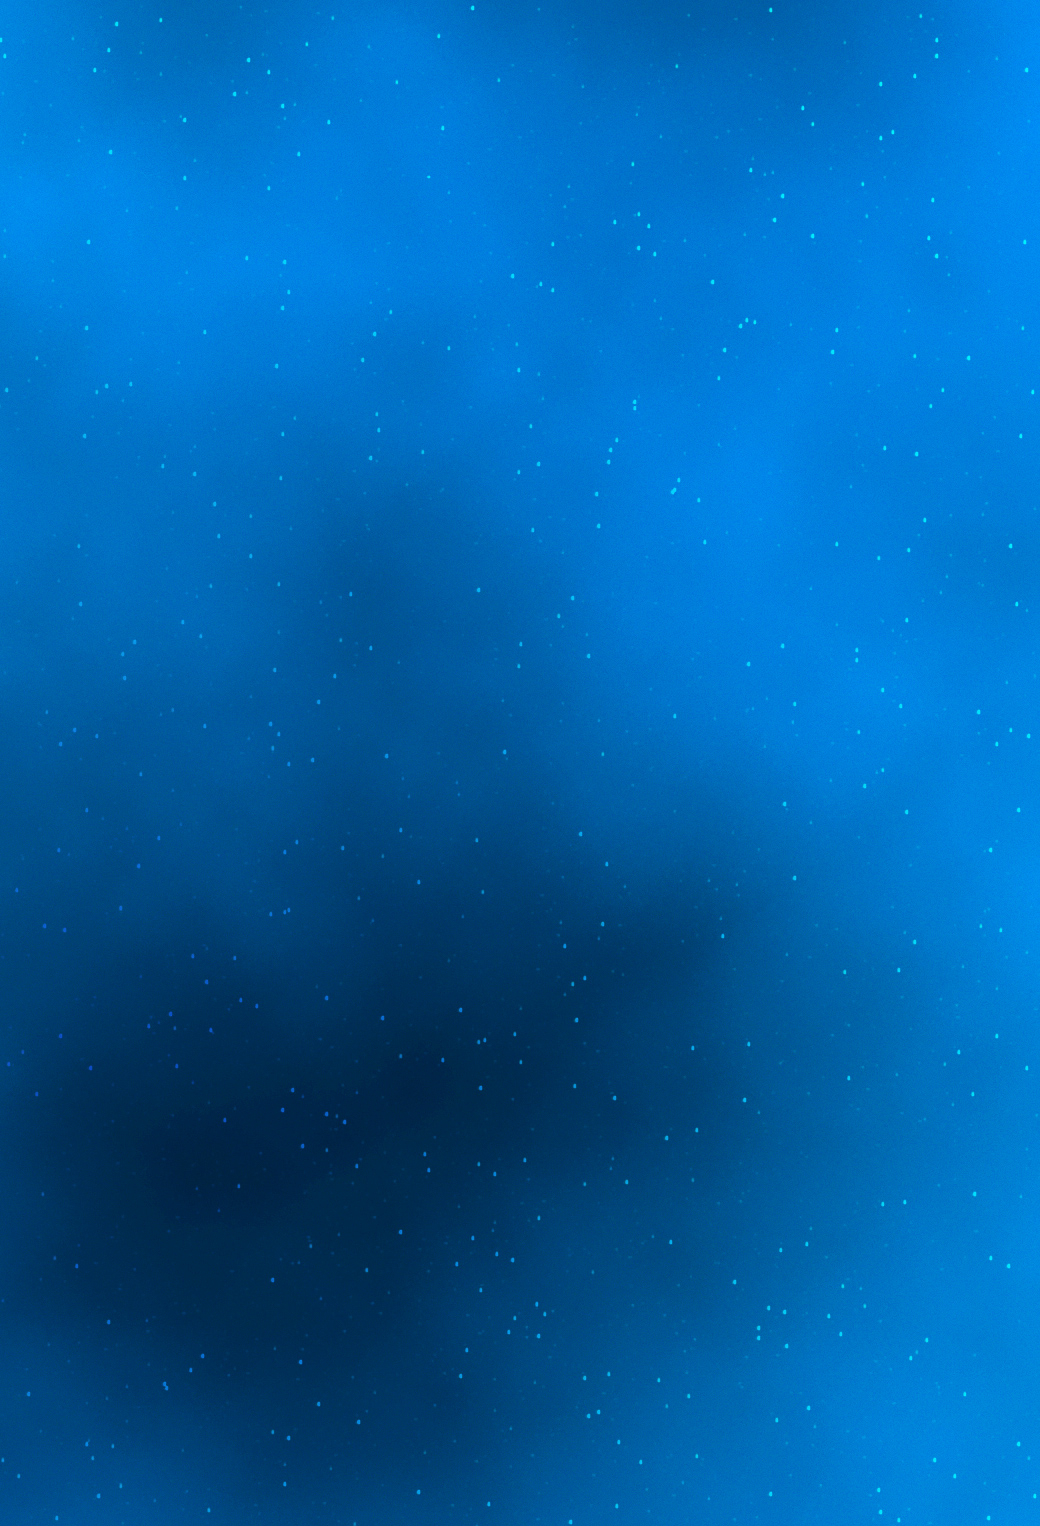 iOS 7 Wallpaper Parallax 66 wallpapers55com   Best Wallpapers for 1040x1526